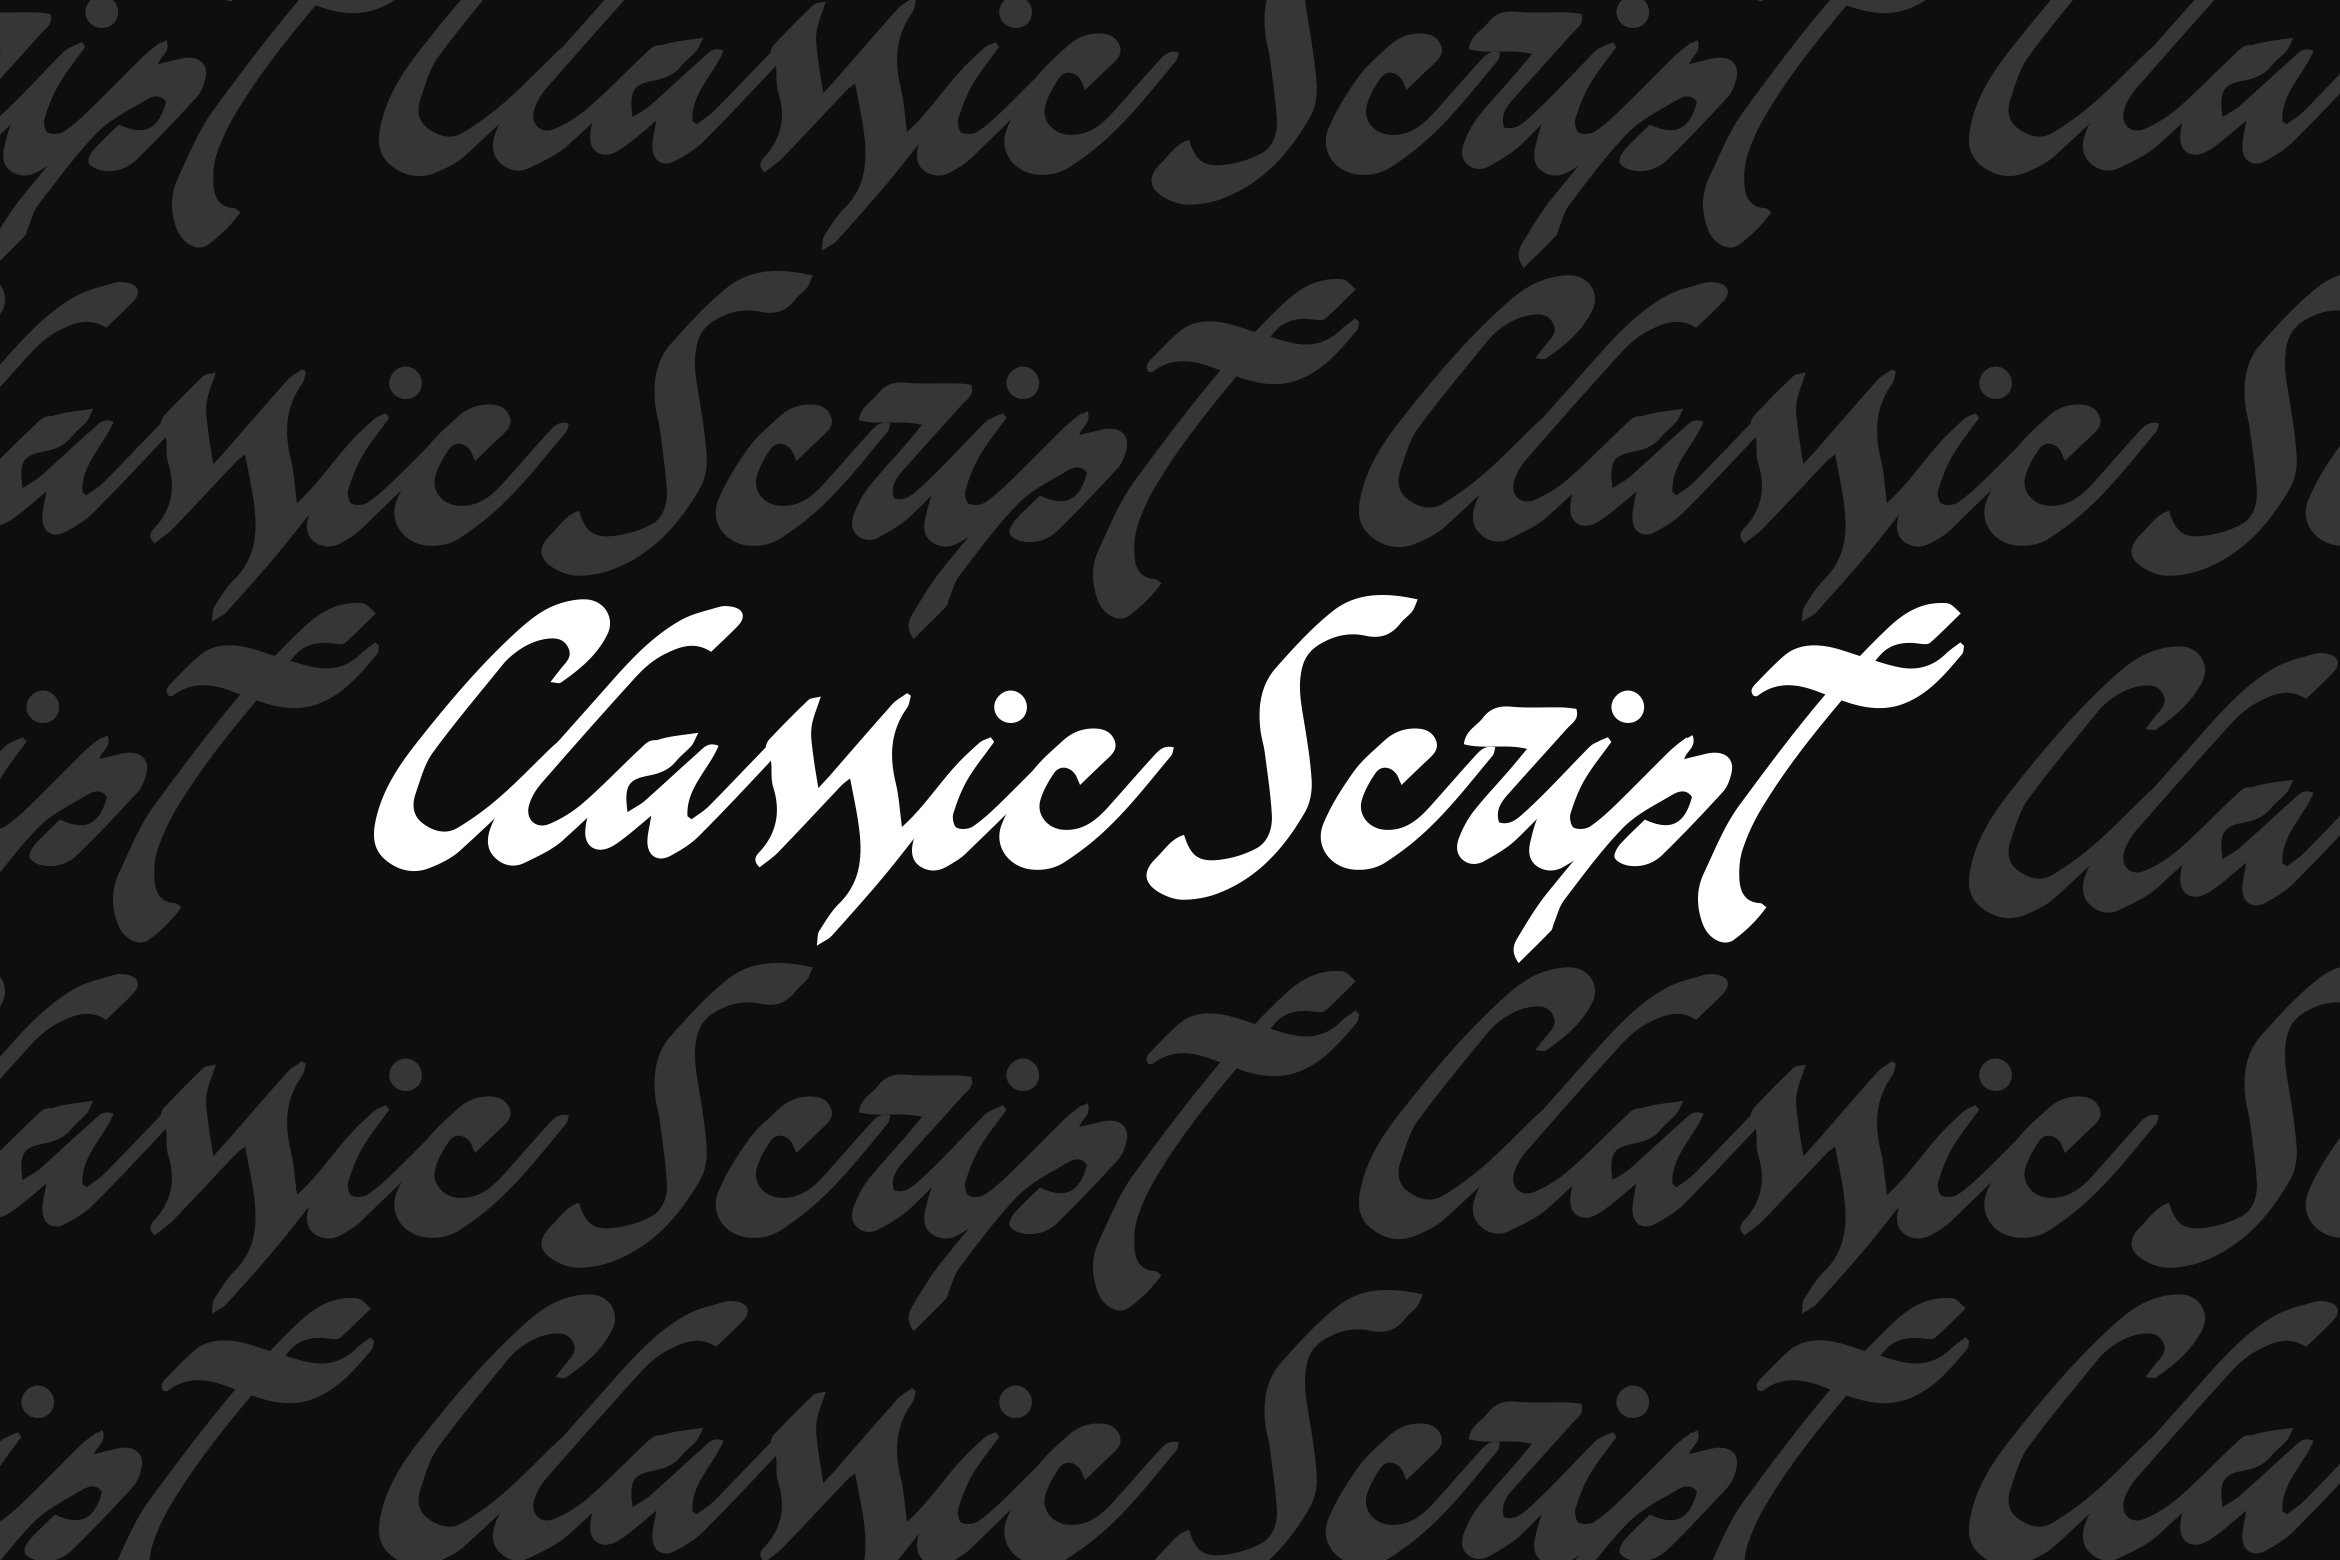 The Murious- Calligraphy Fonts example image 2